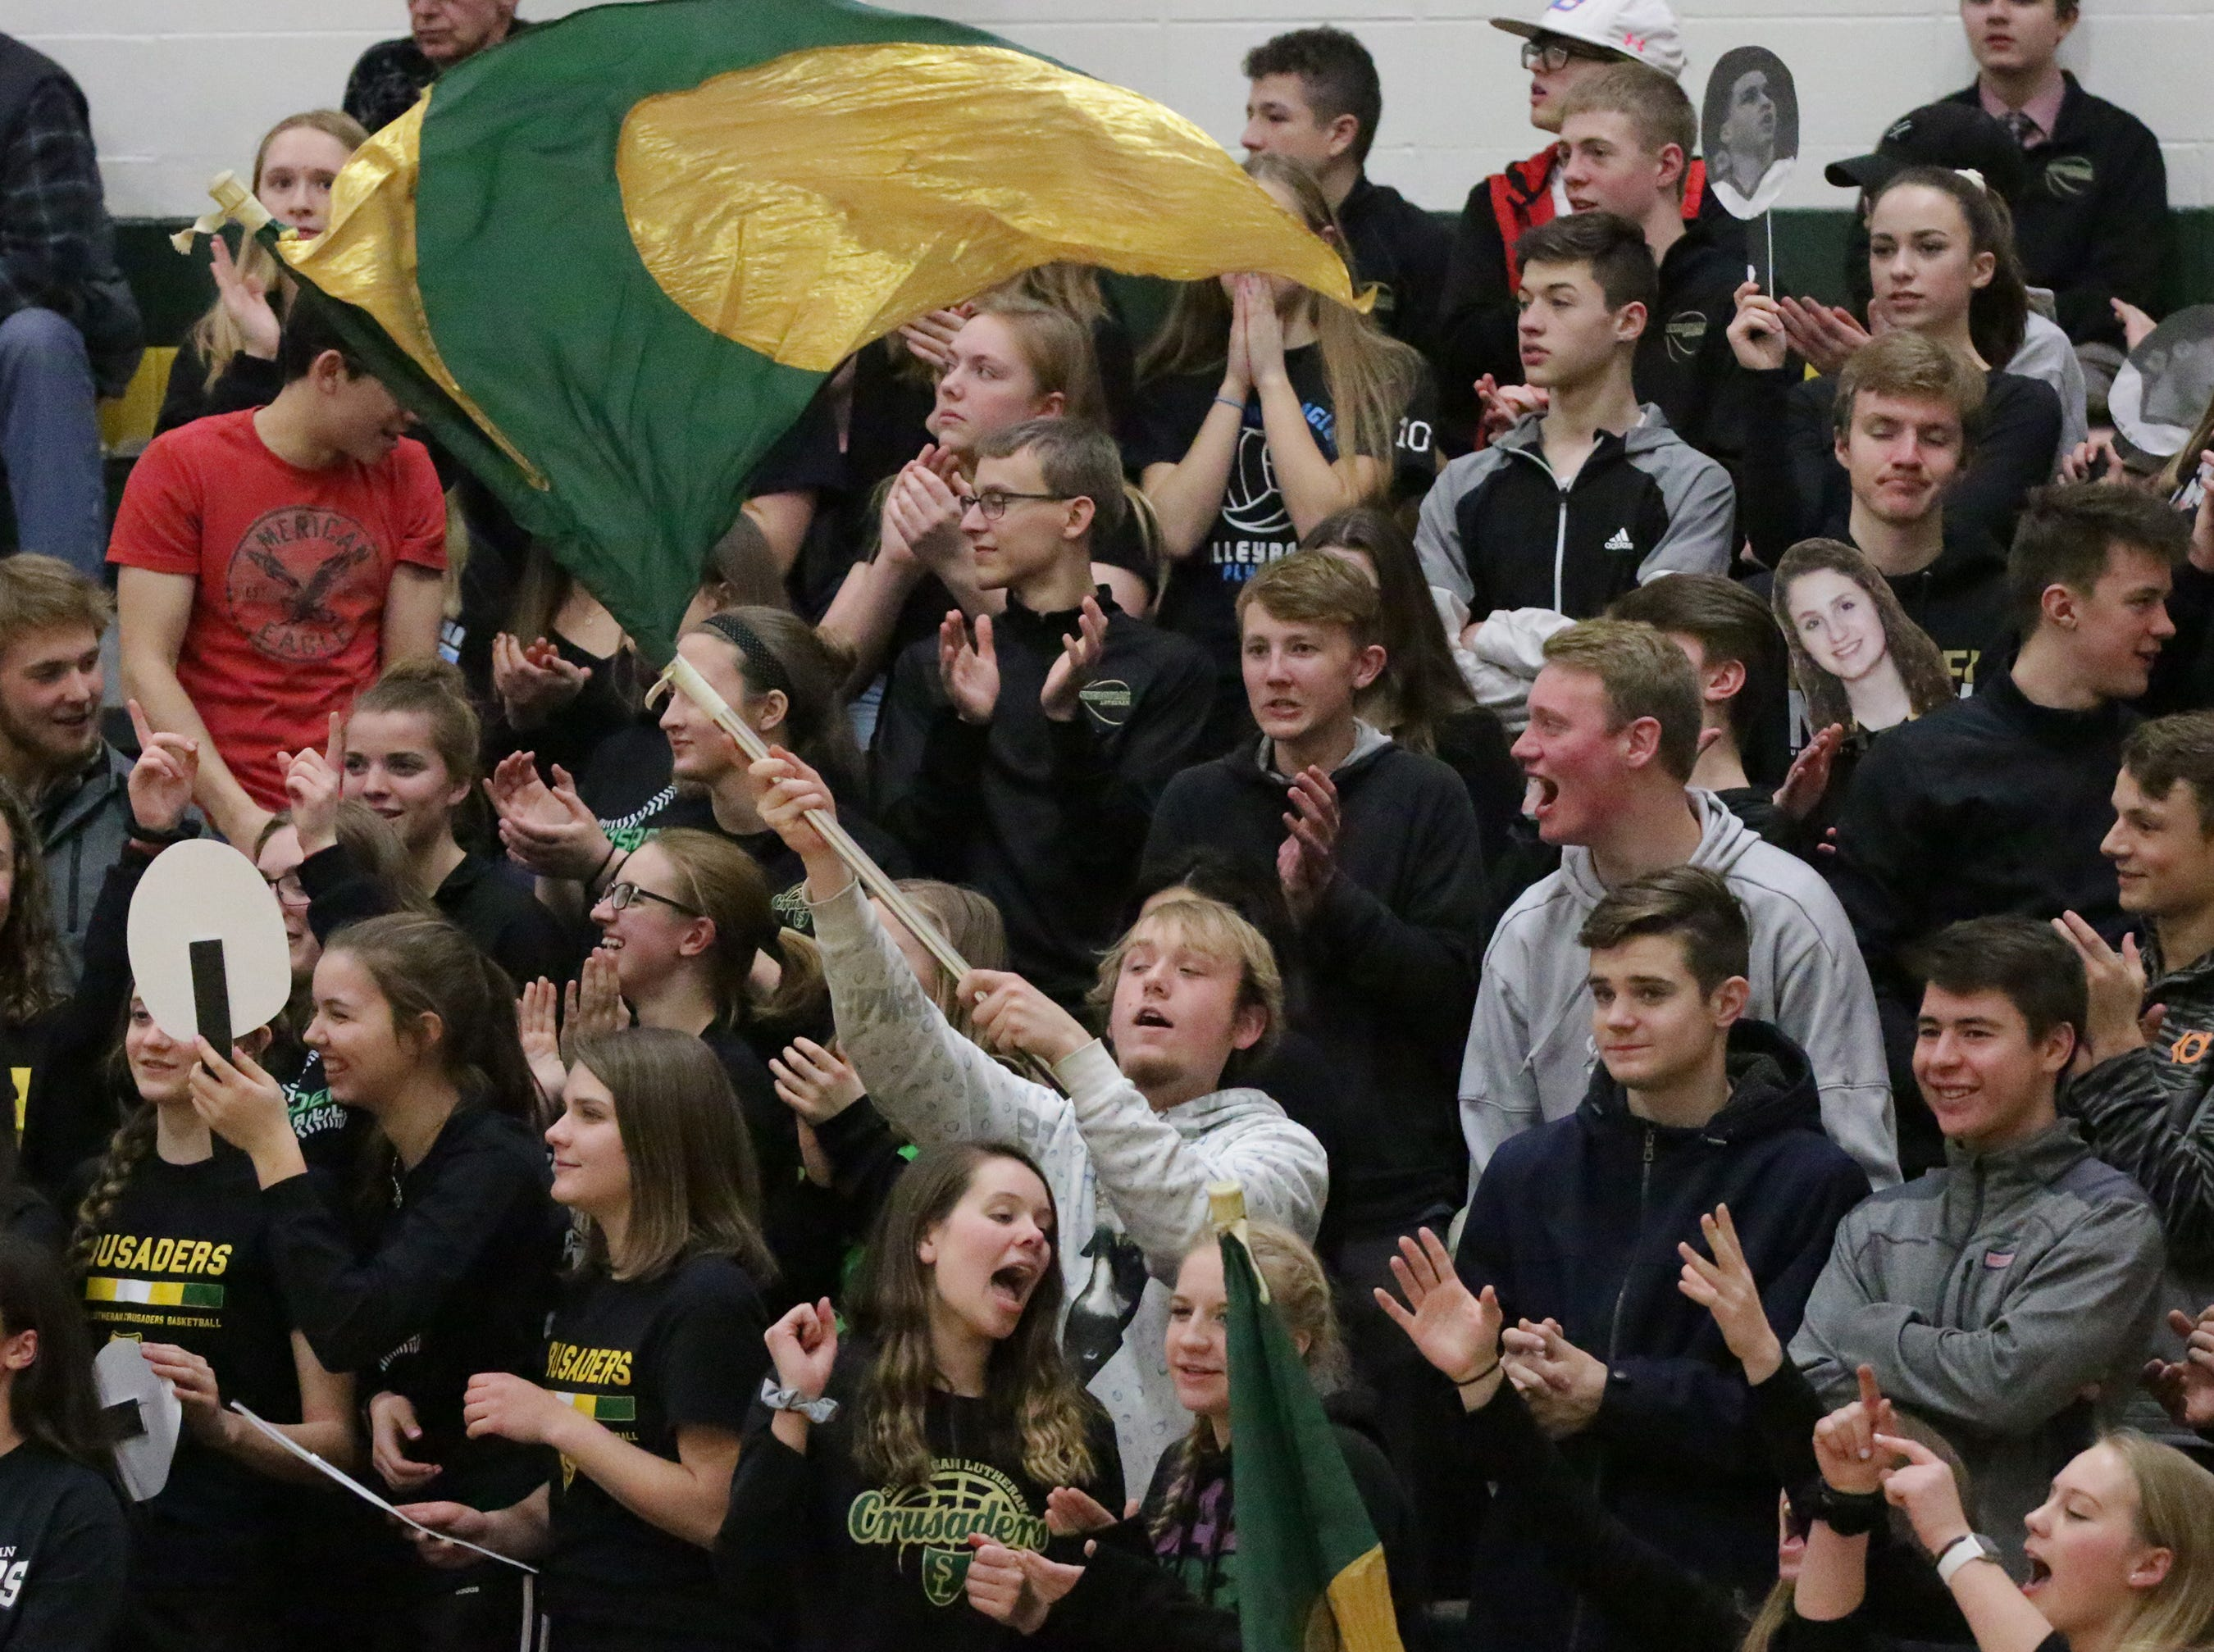 Sheboygan Lutheran fans cheer their team during action with Manitowoc Lutheran, Friday, February 1, 2019, in Sheboygan, Wis.